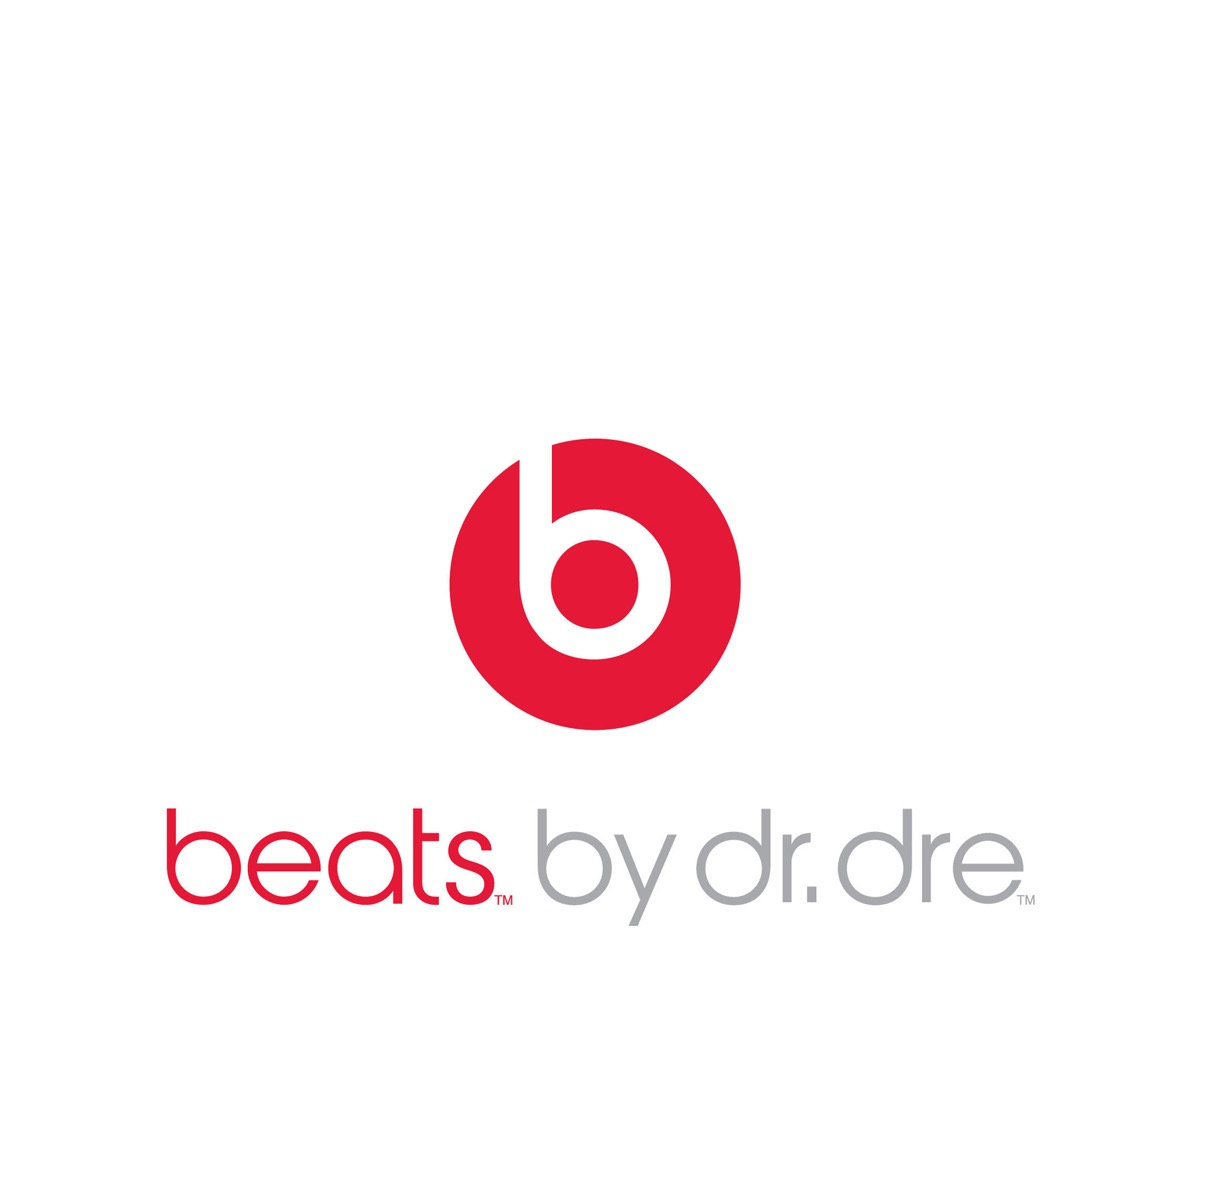 Logo beats by dr. dre